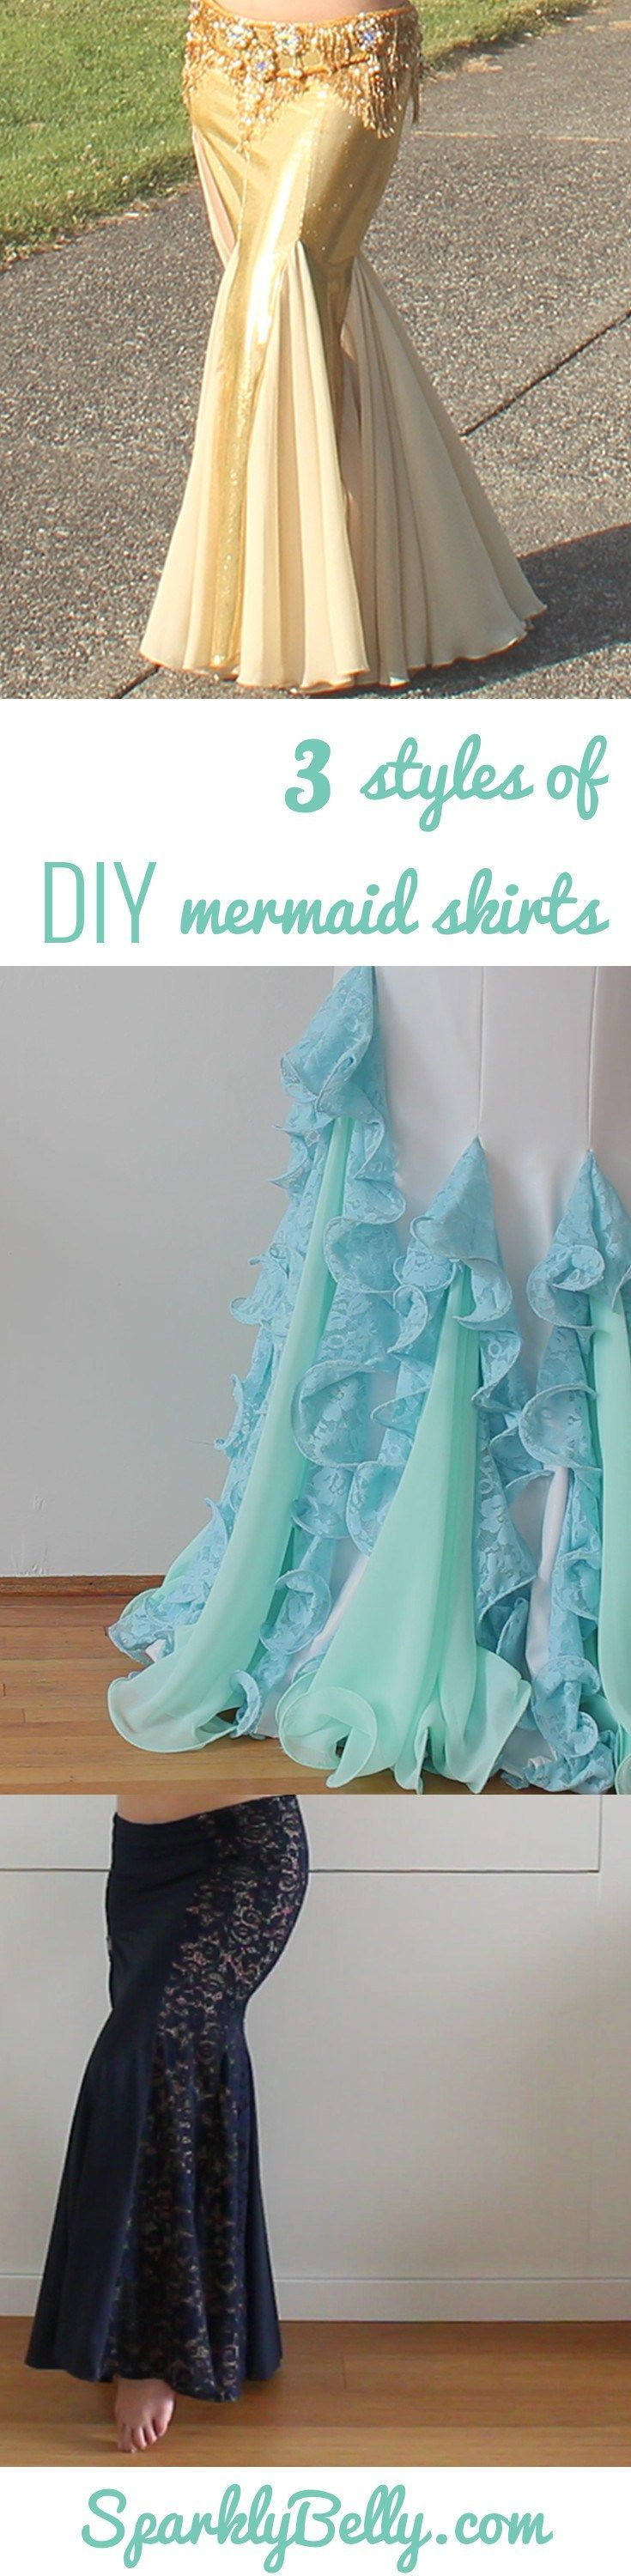 How to Make 3 Styles of Mermaid Skirts from the same patterns